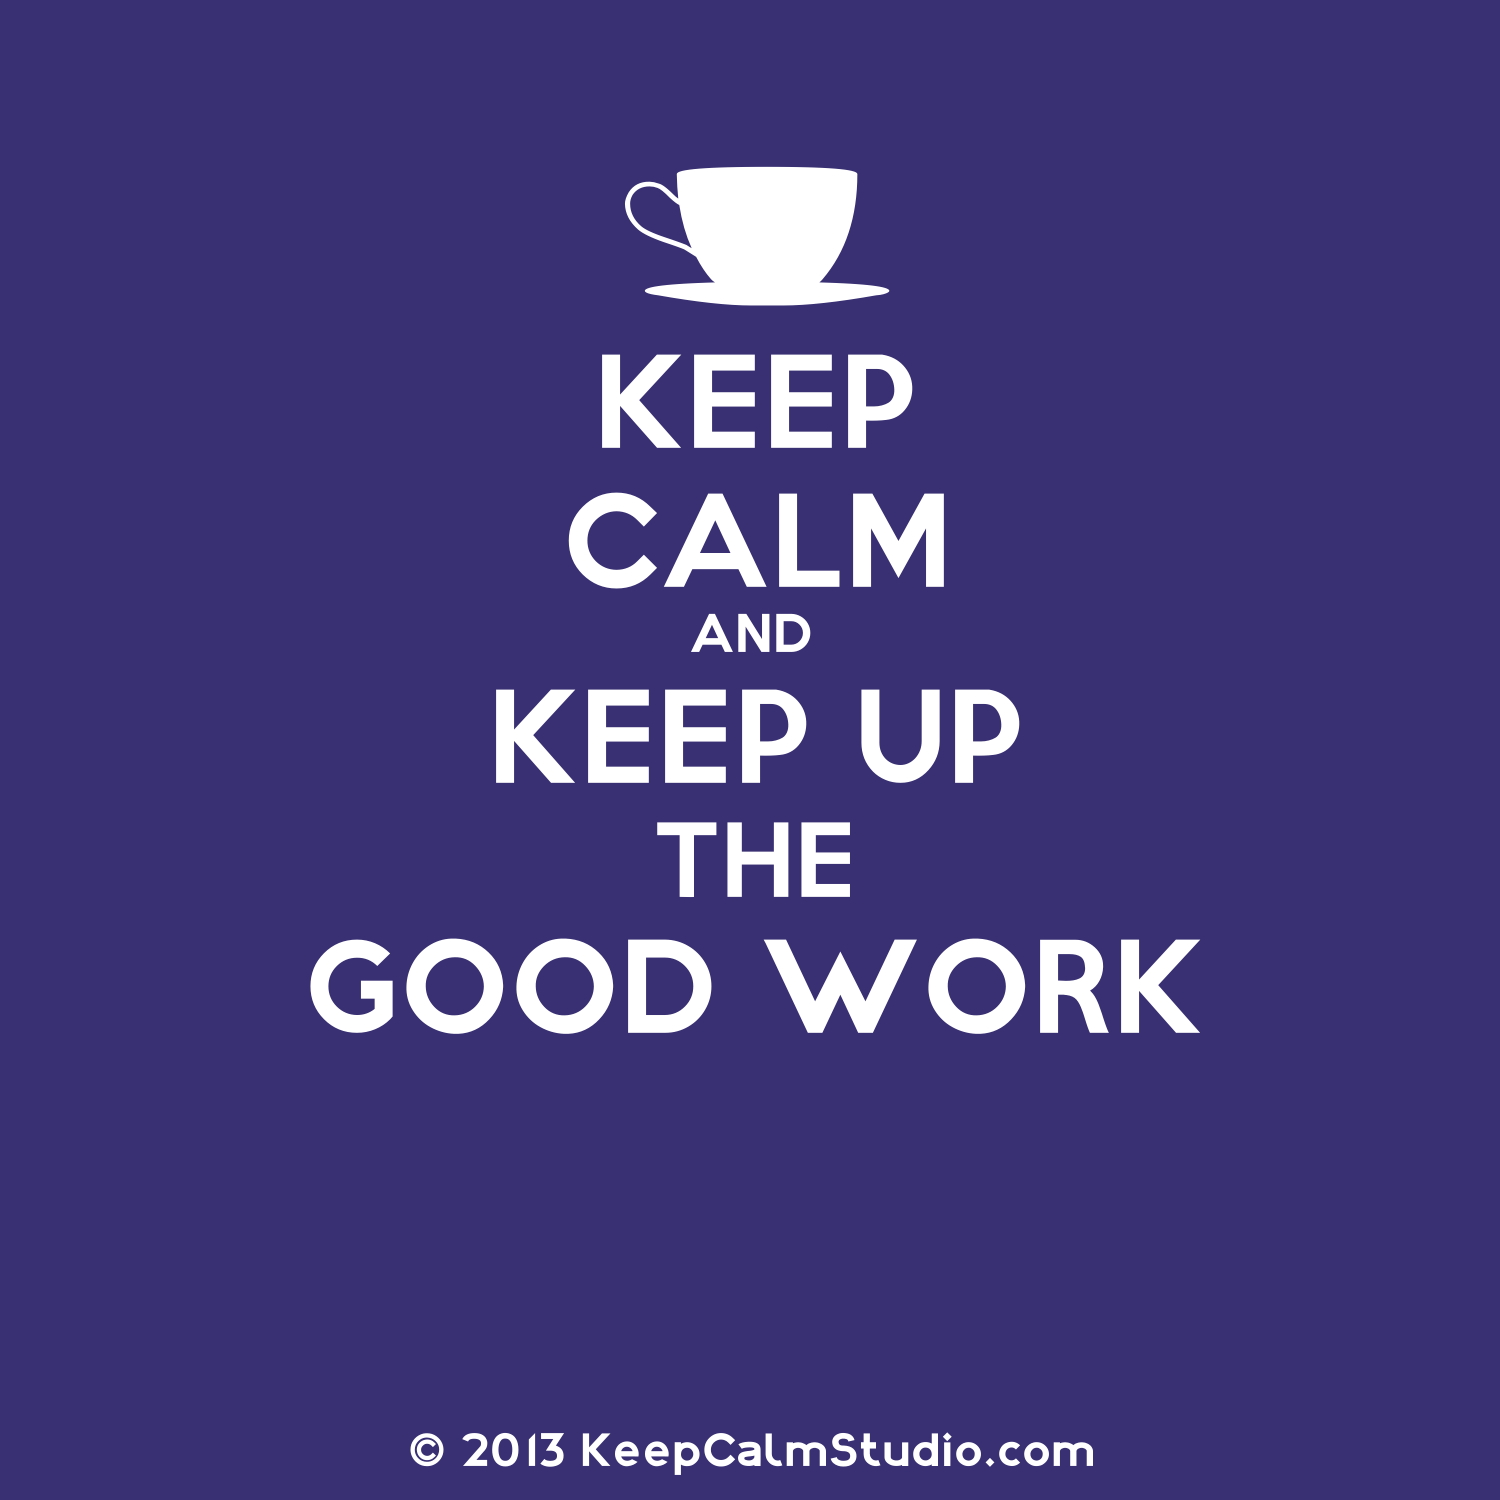 Good Work Done Quotes: Keep Up The Great Work Quotes. QuotesGram